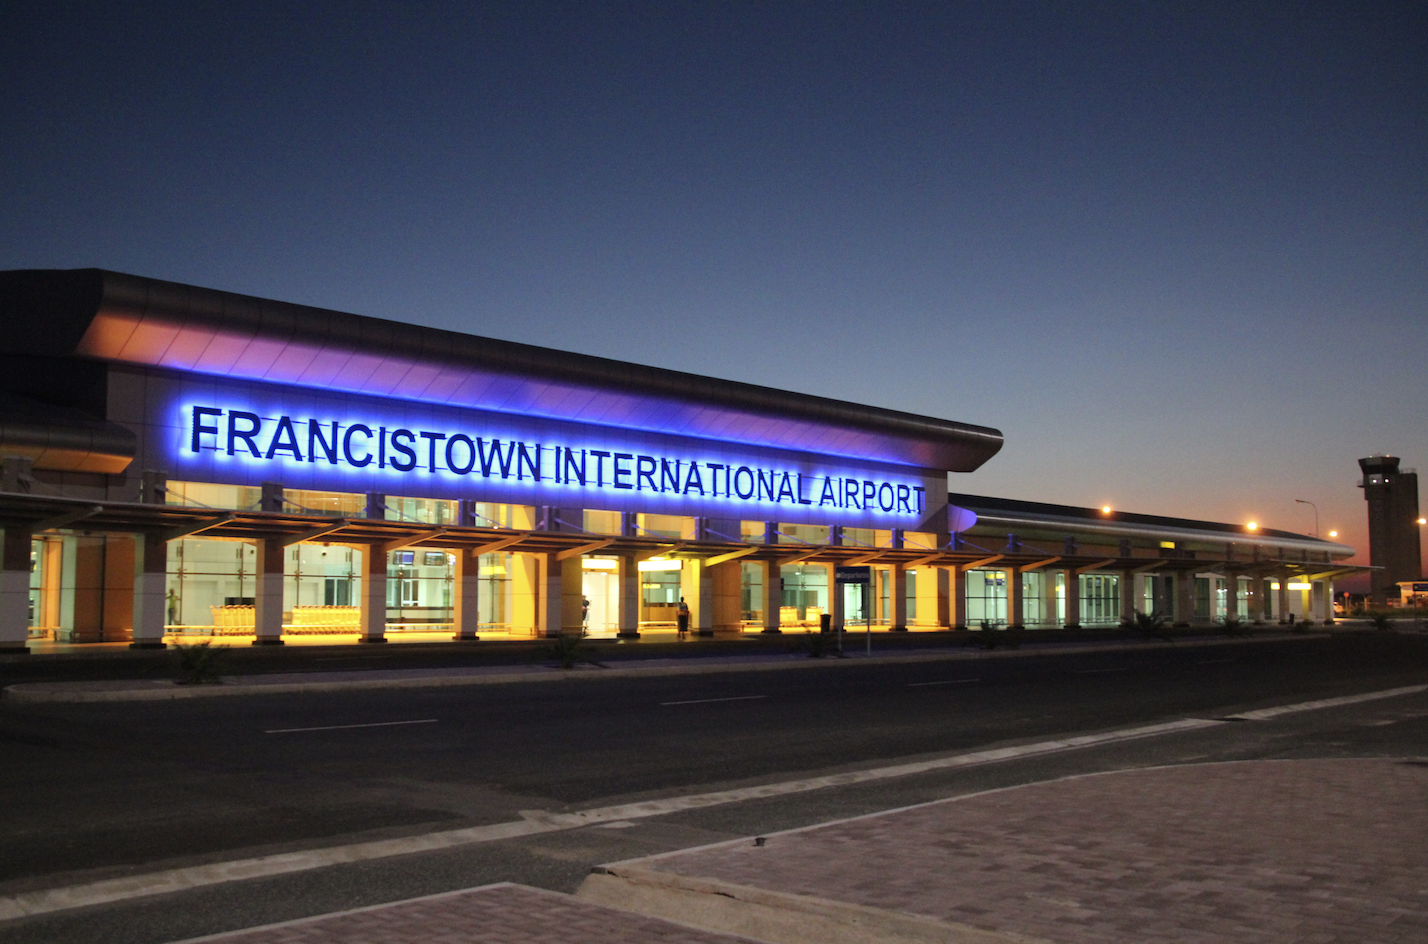 Airport_Francistown